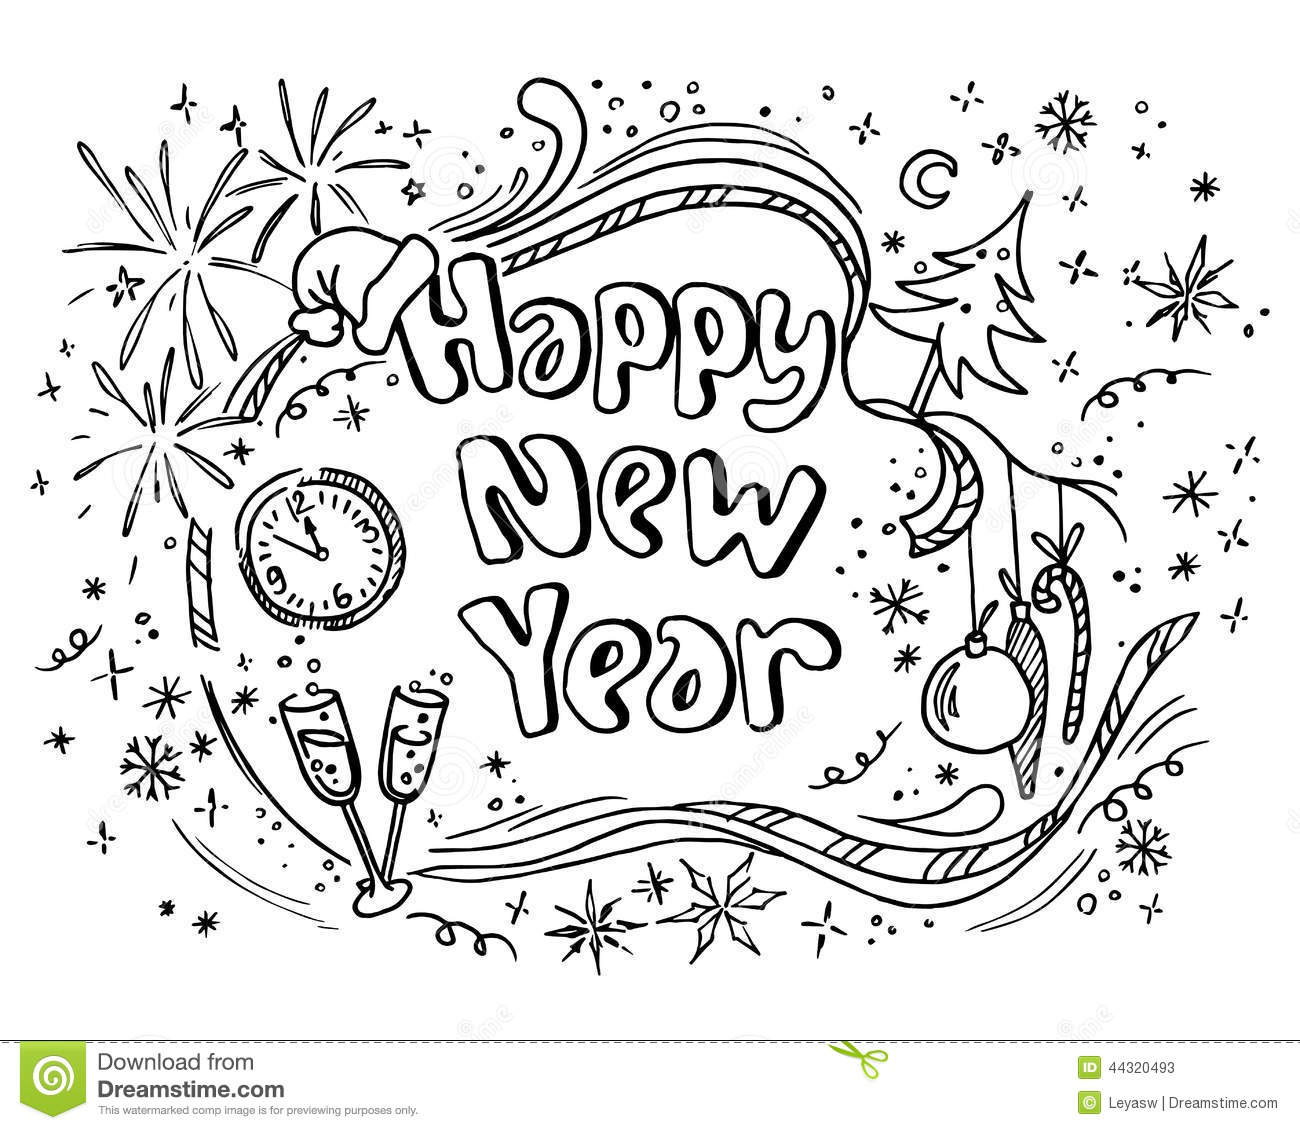 Doodle new year stock vector illustration of graphic for Doodle art free